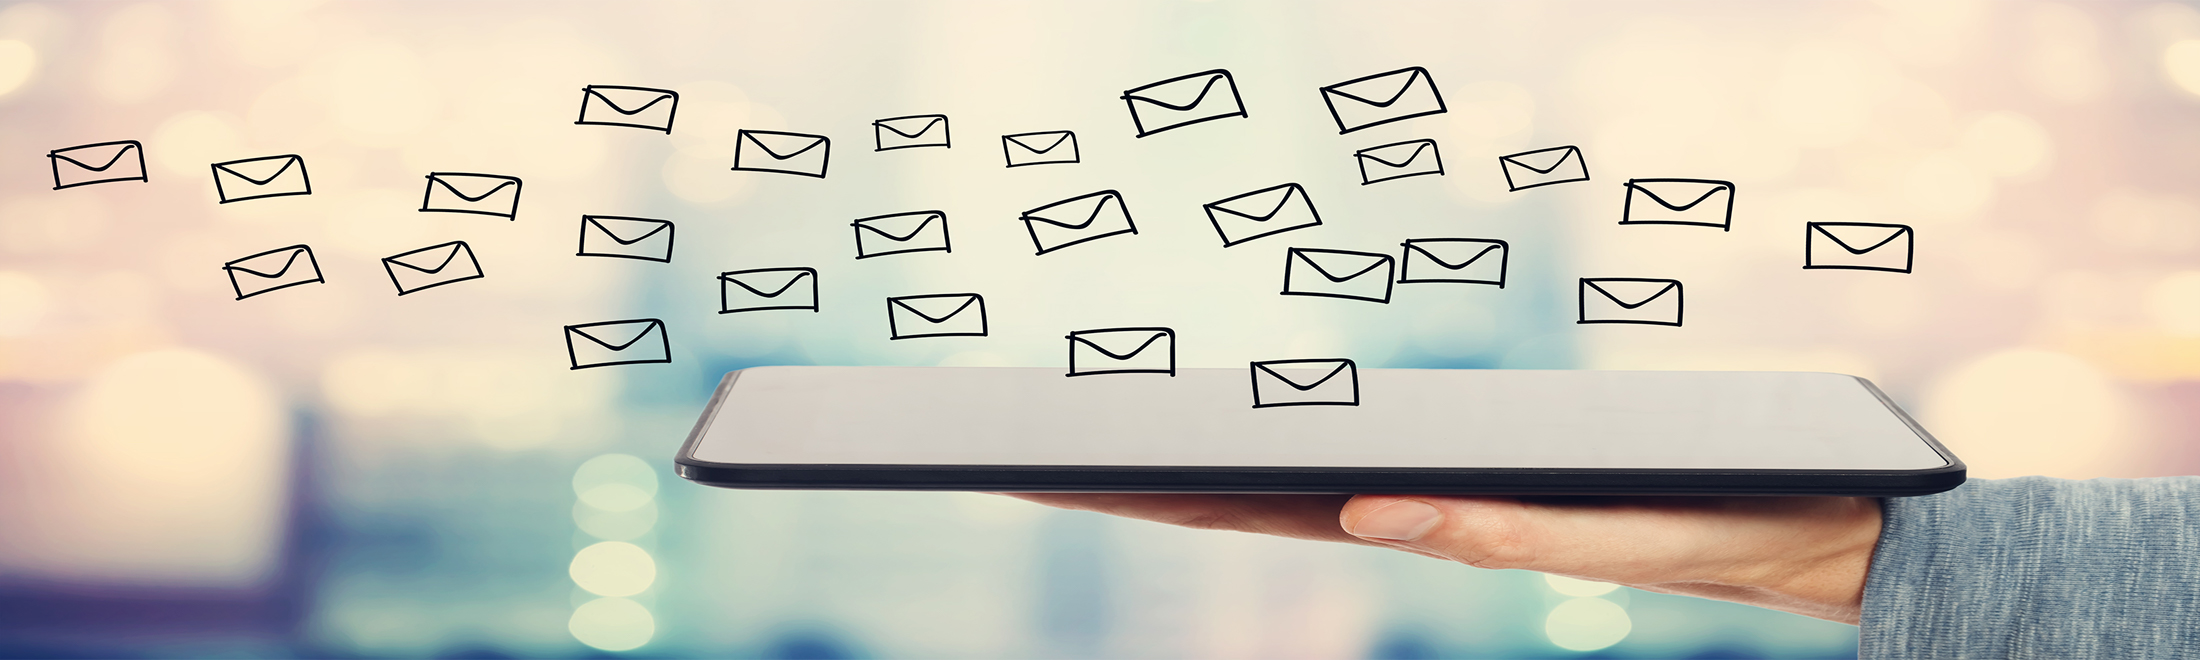 7 tips to improve your email marketing